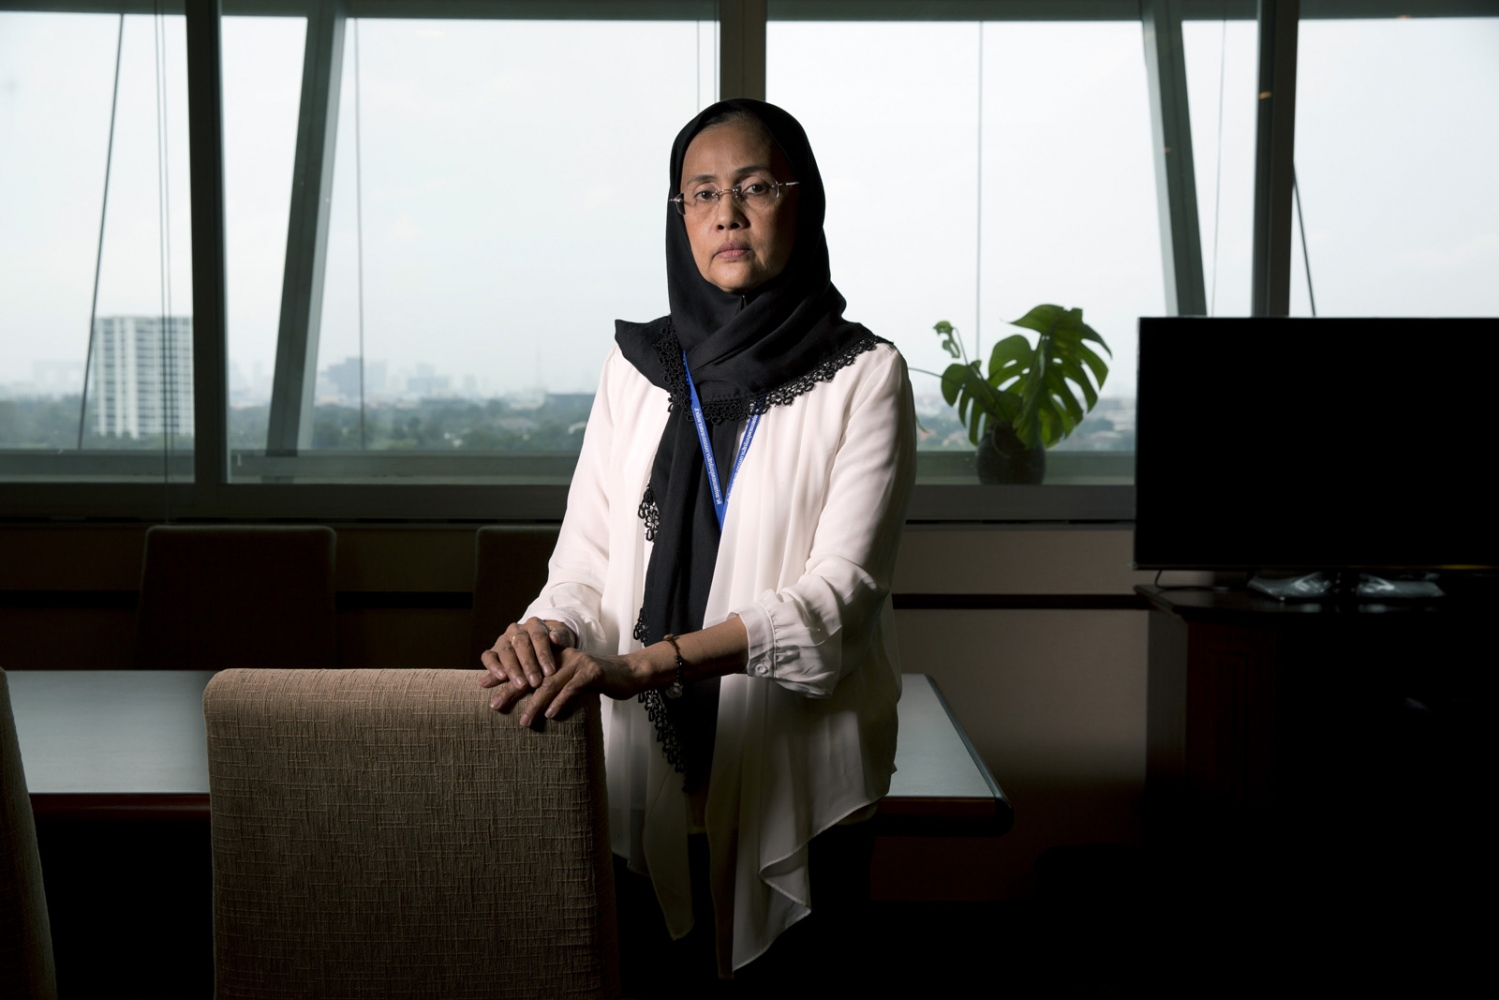 Angkhana Neelapaijit, Commissioner of Thailand's Human Rights Commission, stands in her office in the sprawling Government complex at Chaeng Wattana in Bangkok. Before holding this position she fought her own personal battle to bring justice to her husband, Somchai Neelapaijit, who was abducted in Bangkok and never seen again.  Bangkok, Thailand